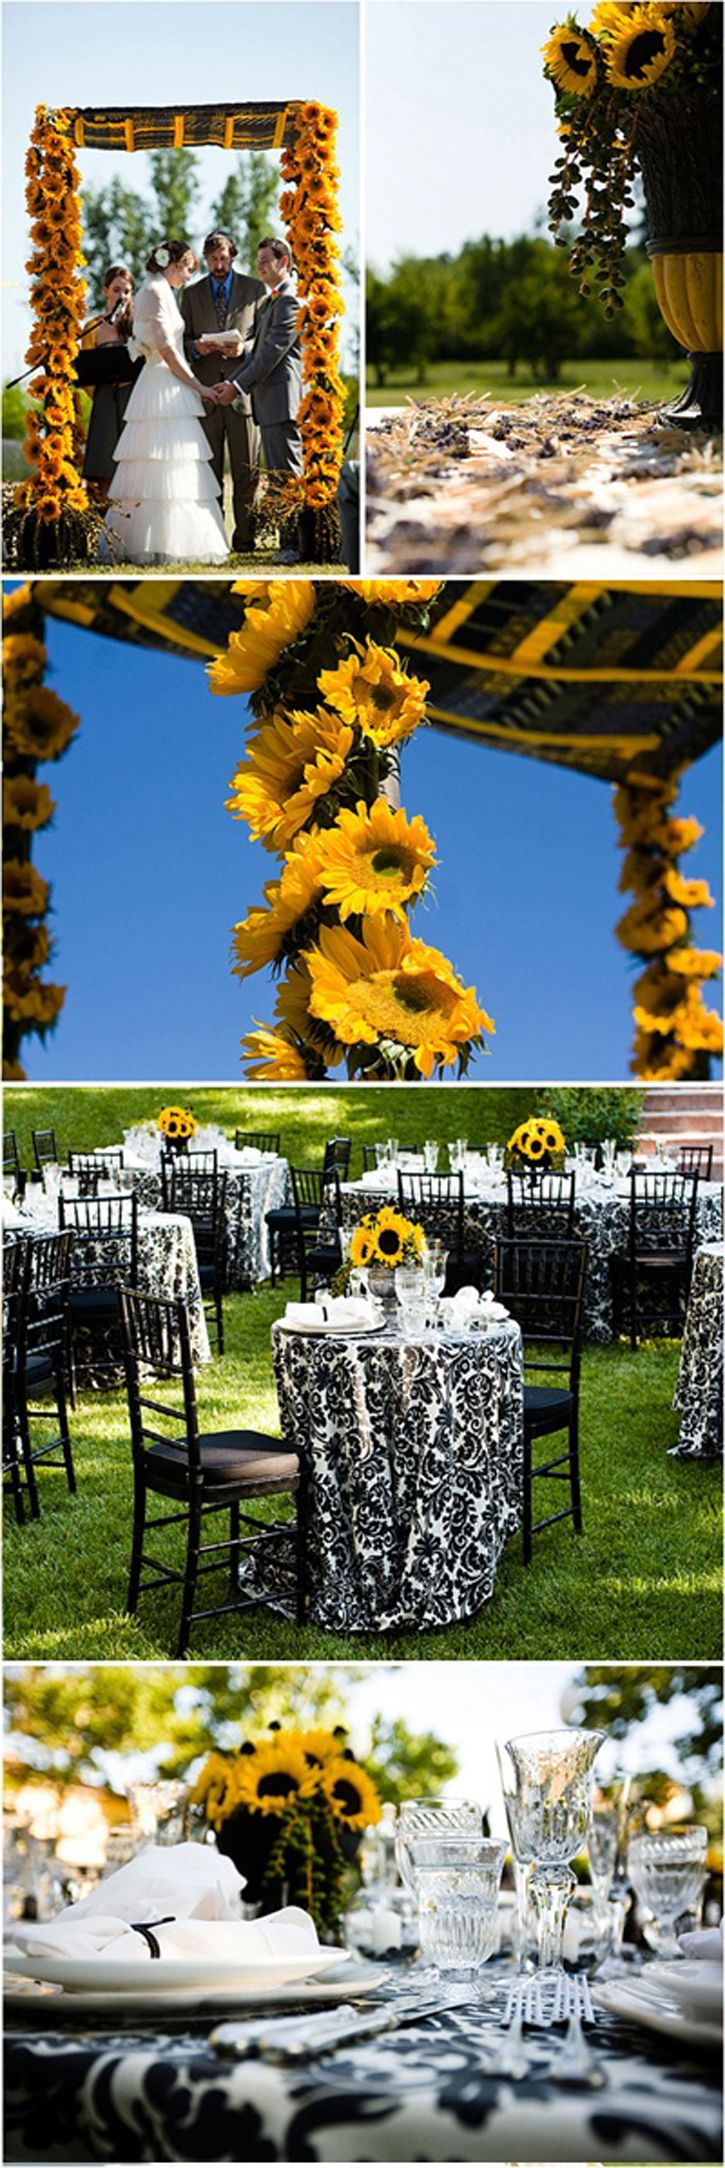 Sunflower Wedding Decorations | Sunflower Wedding Ideas | Weddinary.com